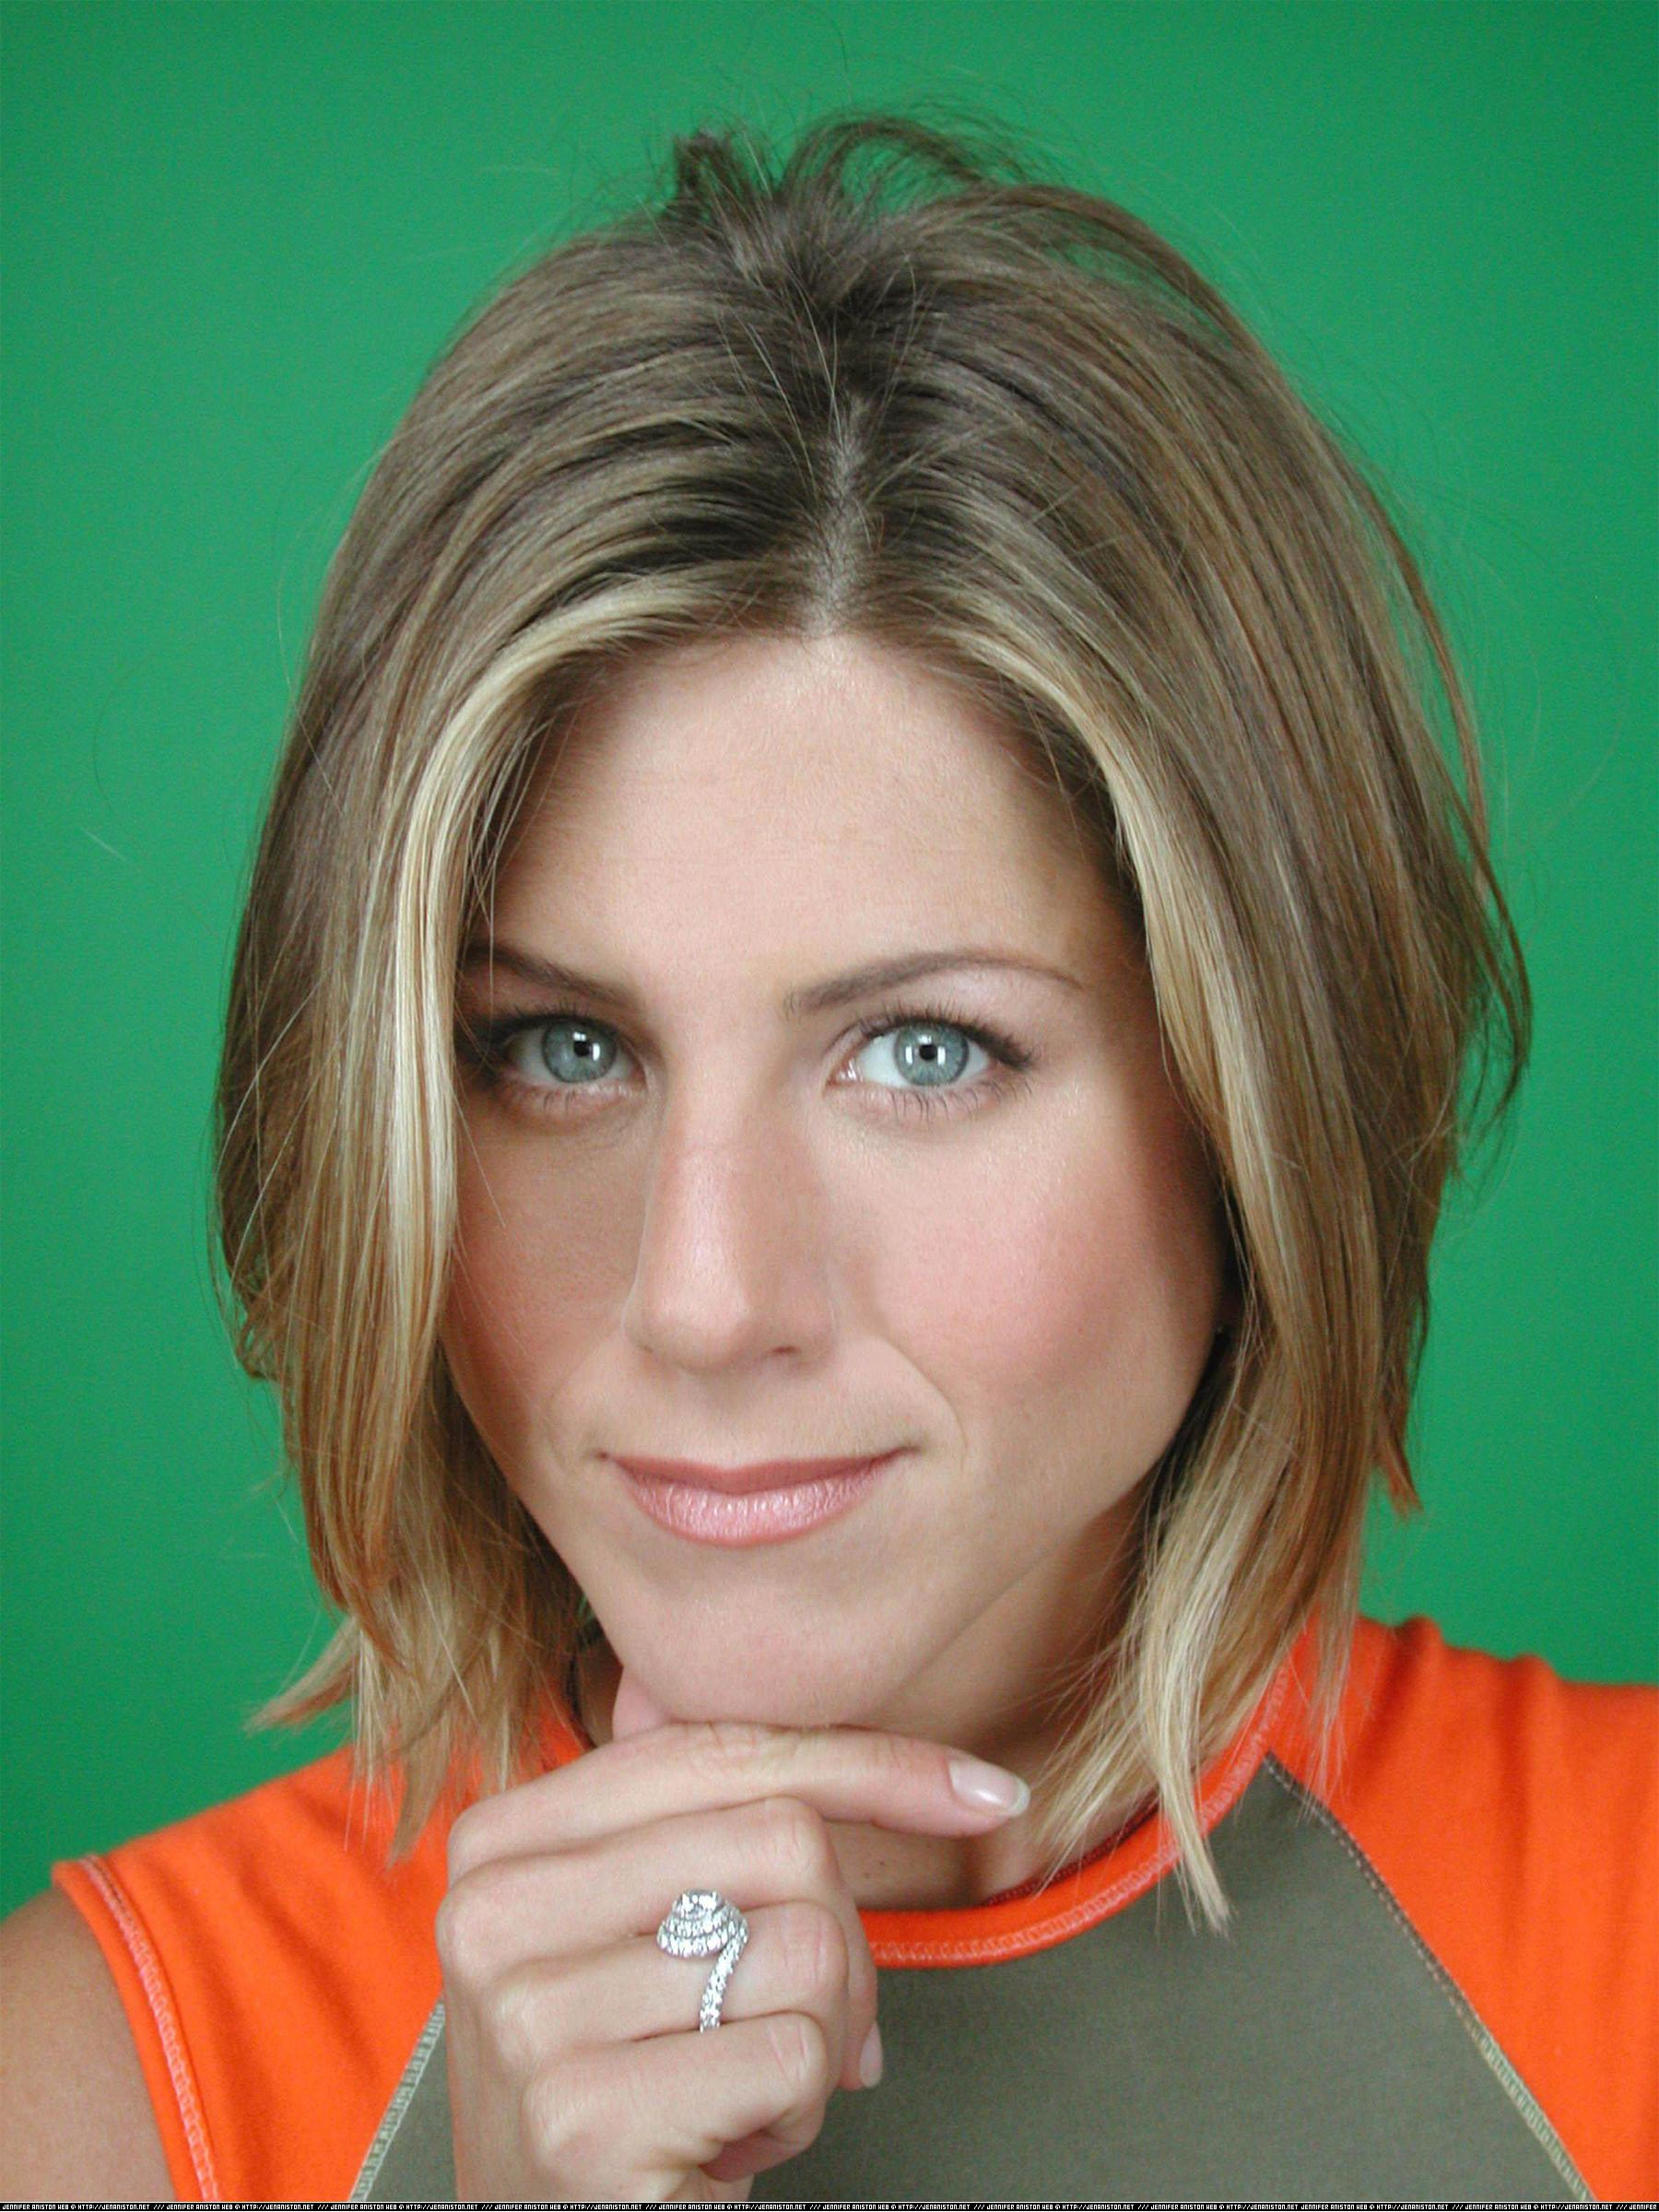 Jennifer Aniston photo #742648